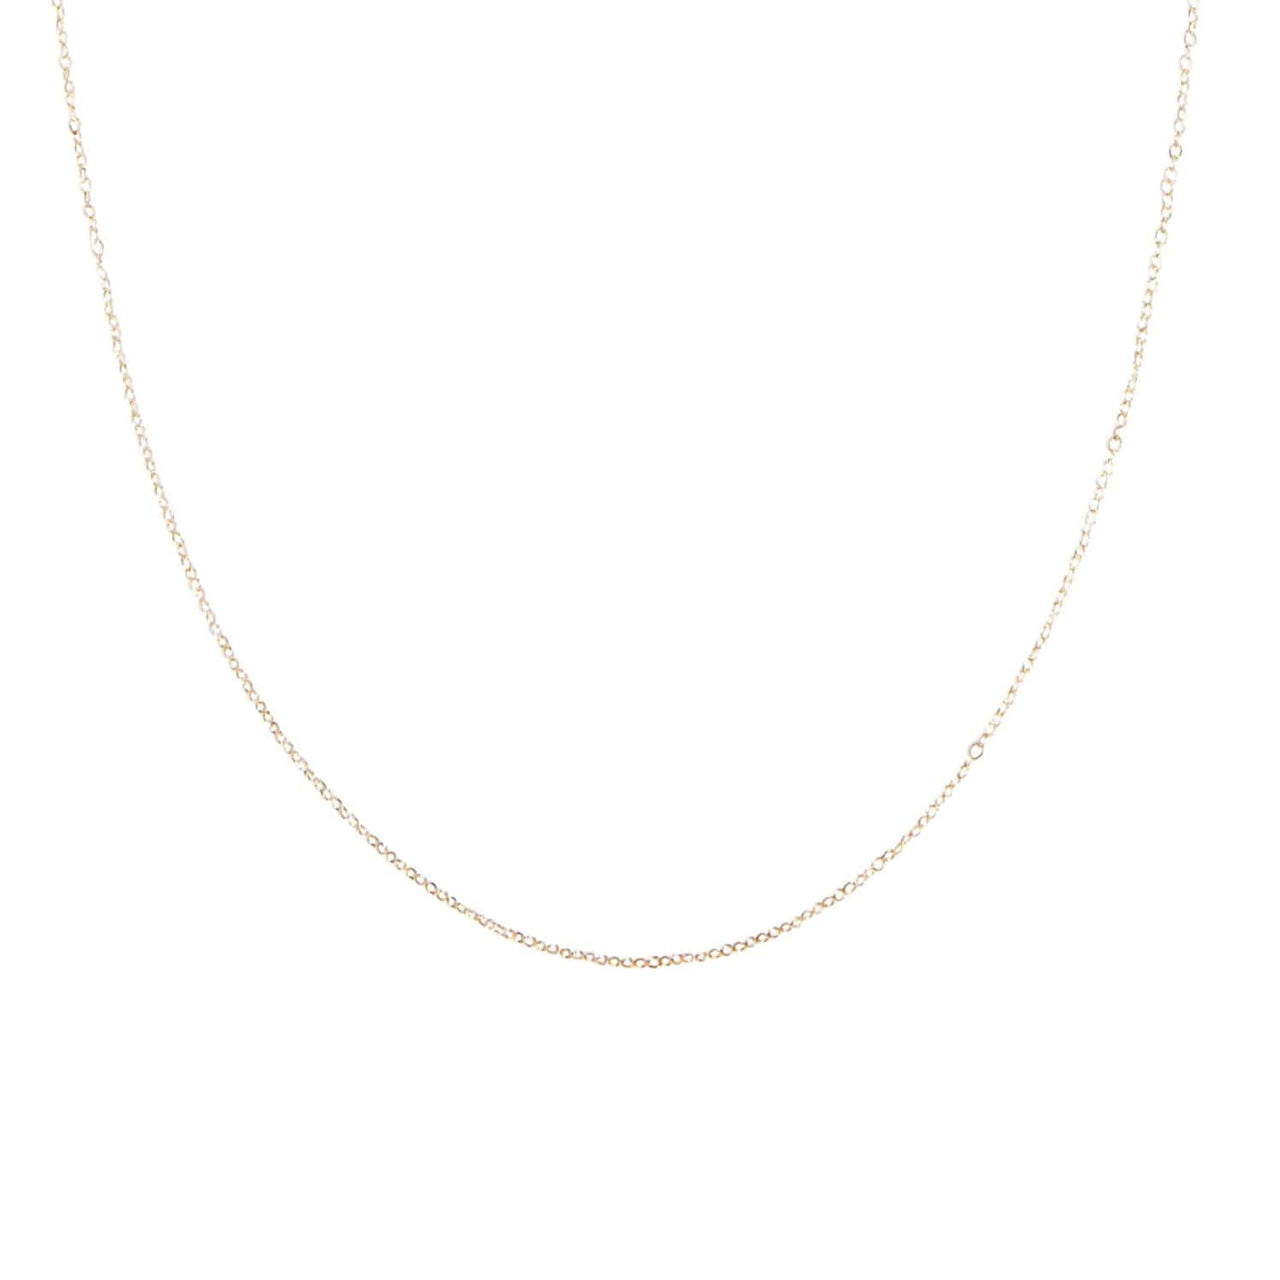 "AMARILO Necklaces 14k yellow gold / 16"" Alisha Chain"